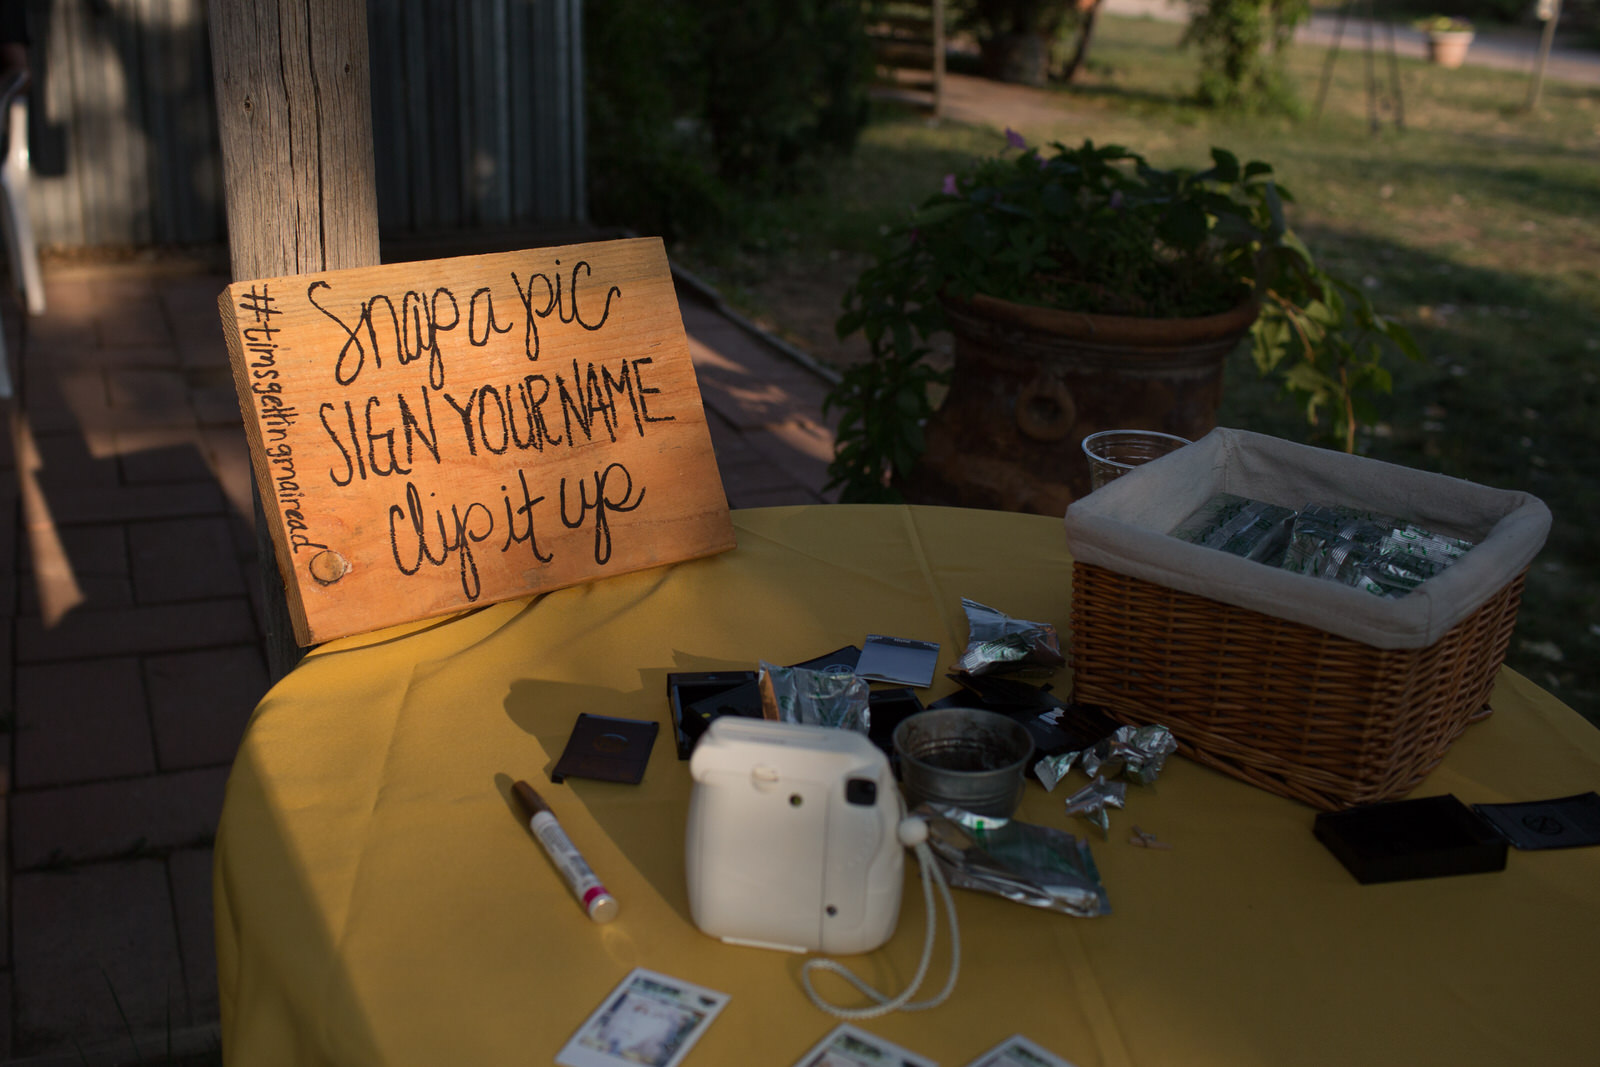 polaroid camera, film and a snap a pic wooden sign at an outdoor wedding